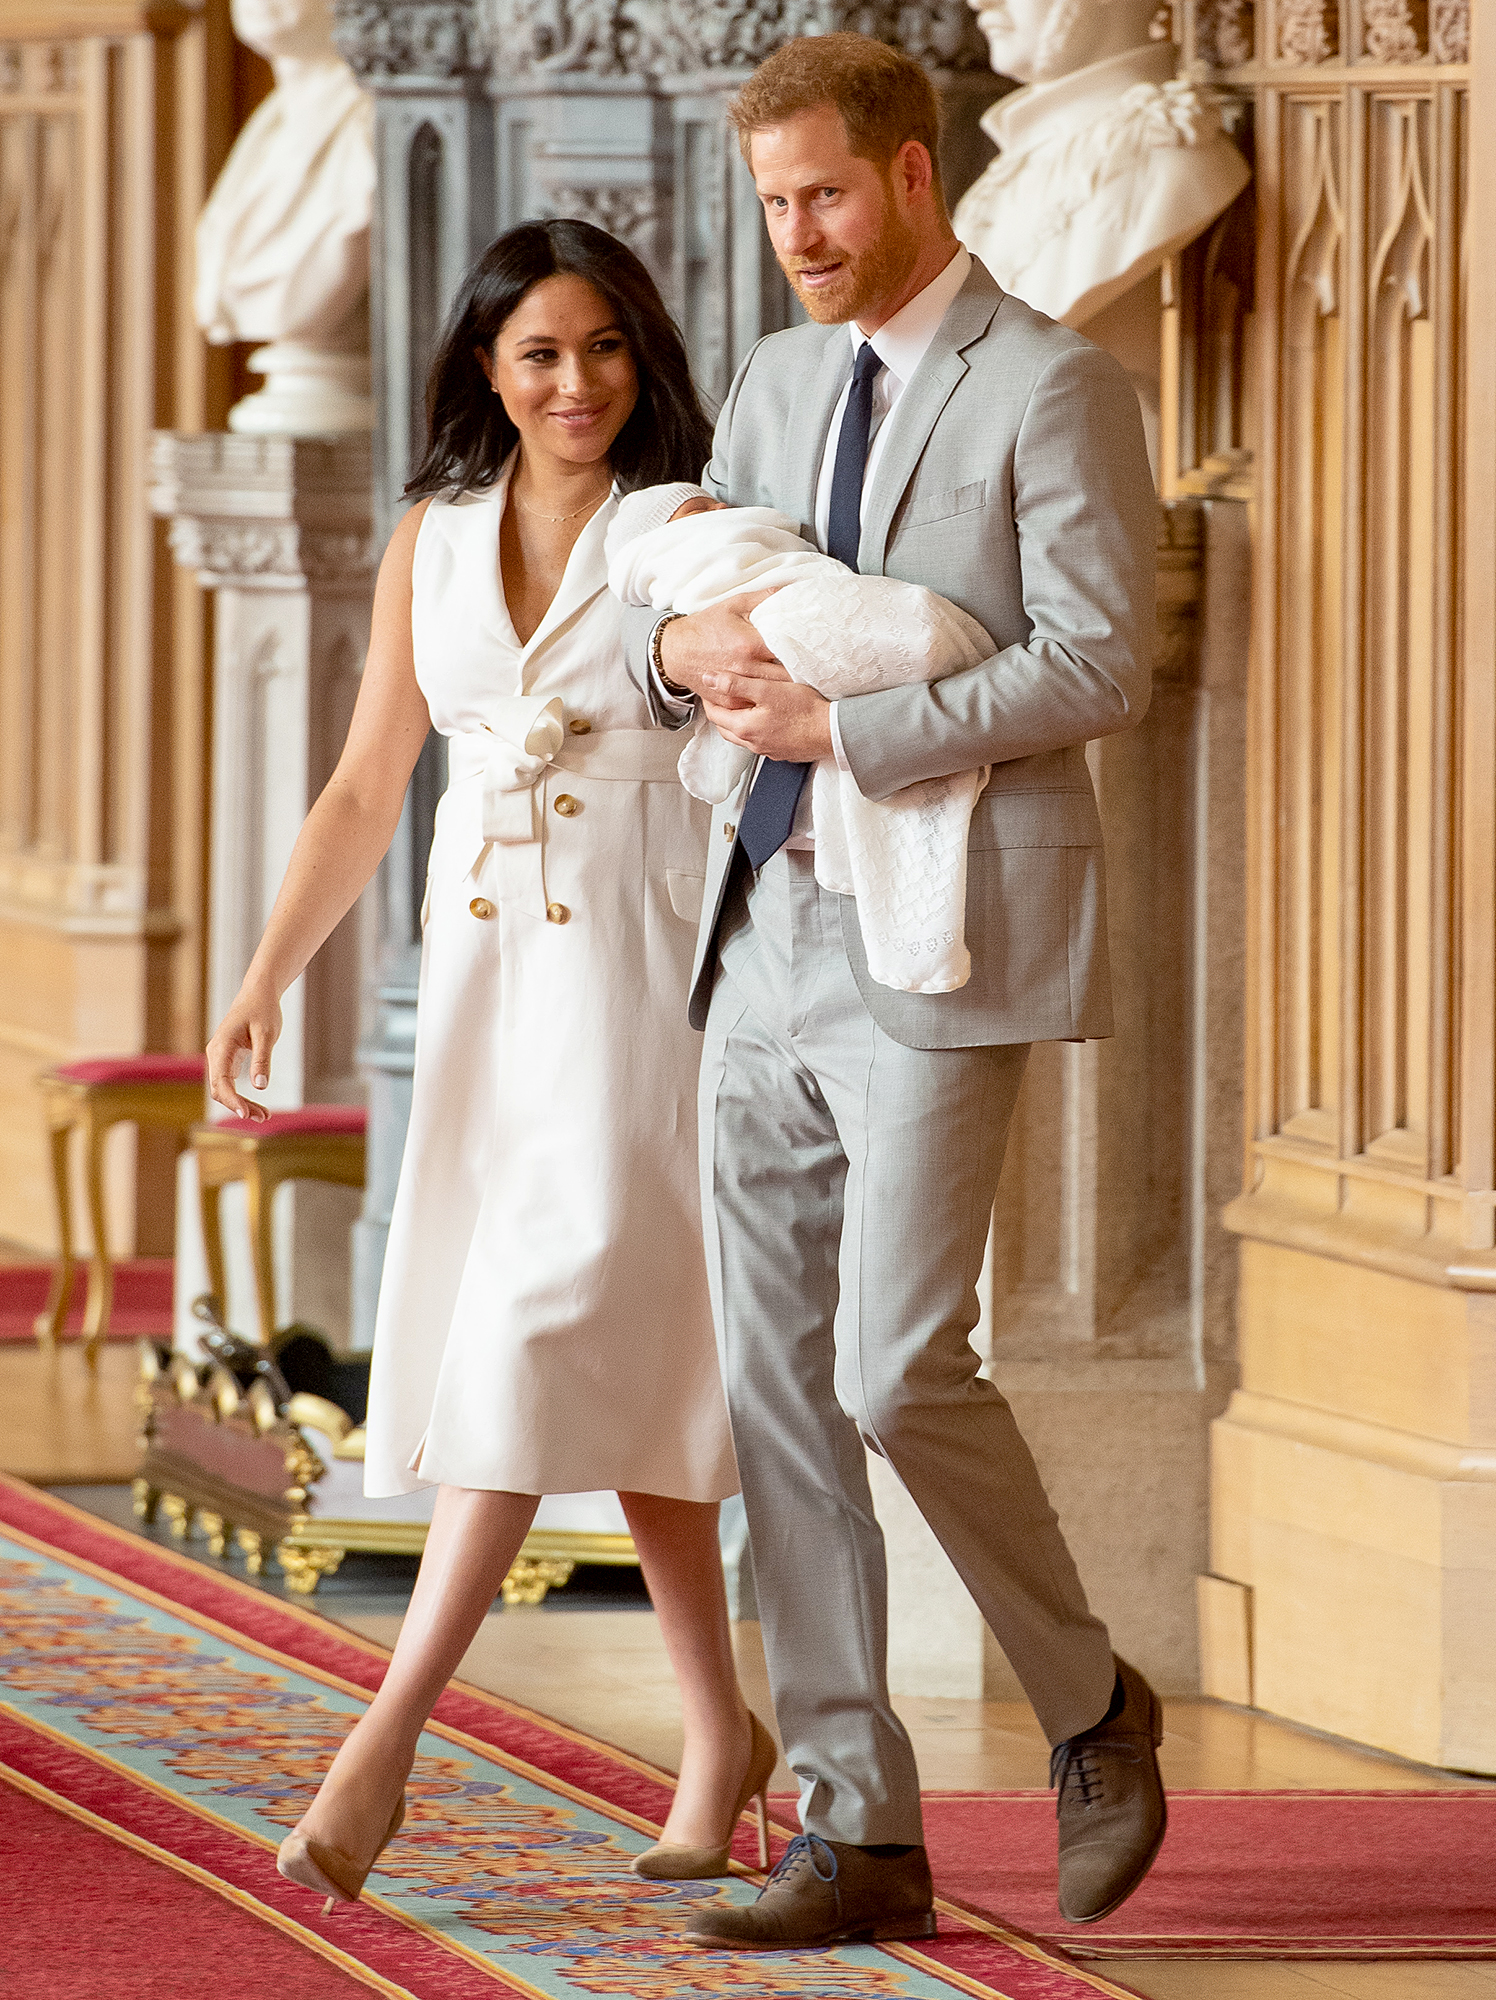 Prince-Harry-and-Duchess-Meghan's-Baby-Archie-Will-Not-Have-a-Royal-Title